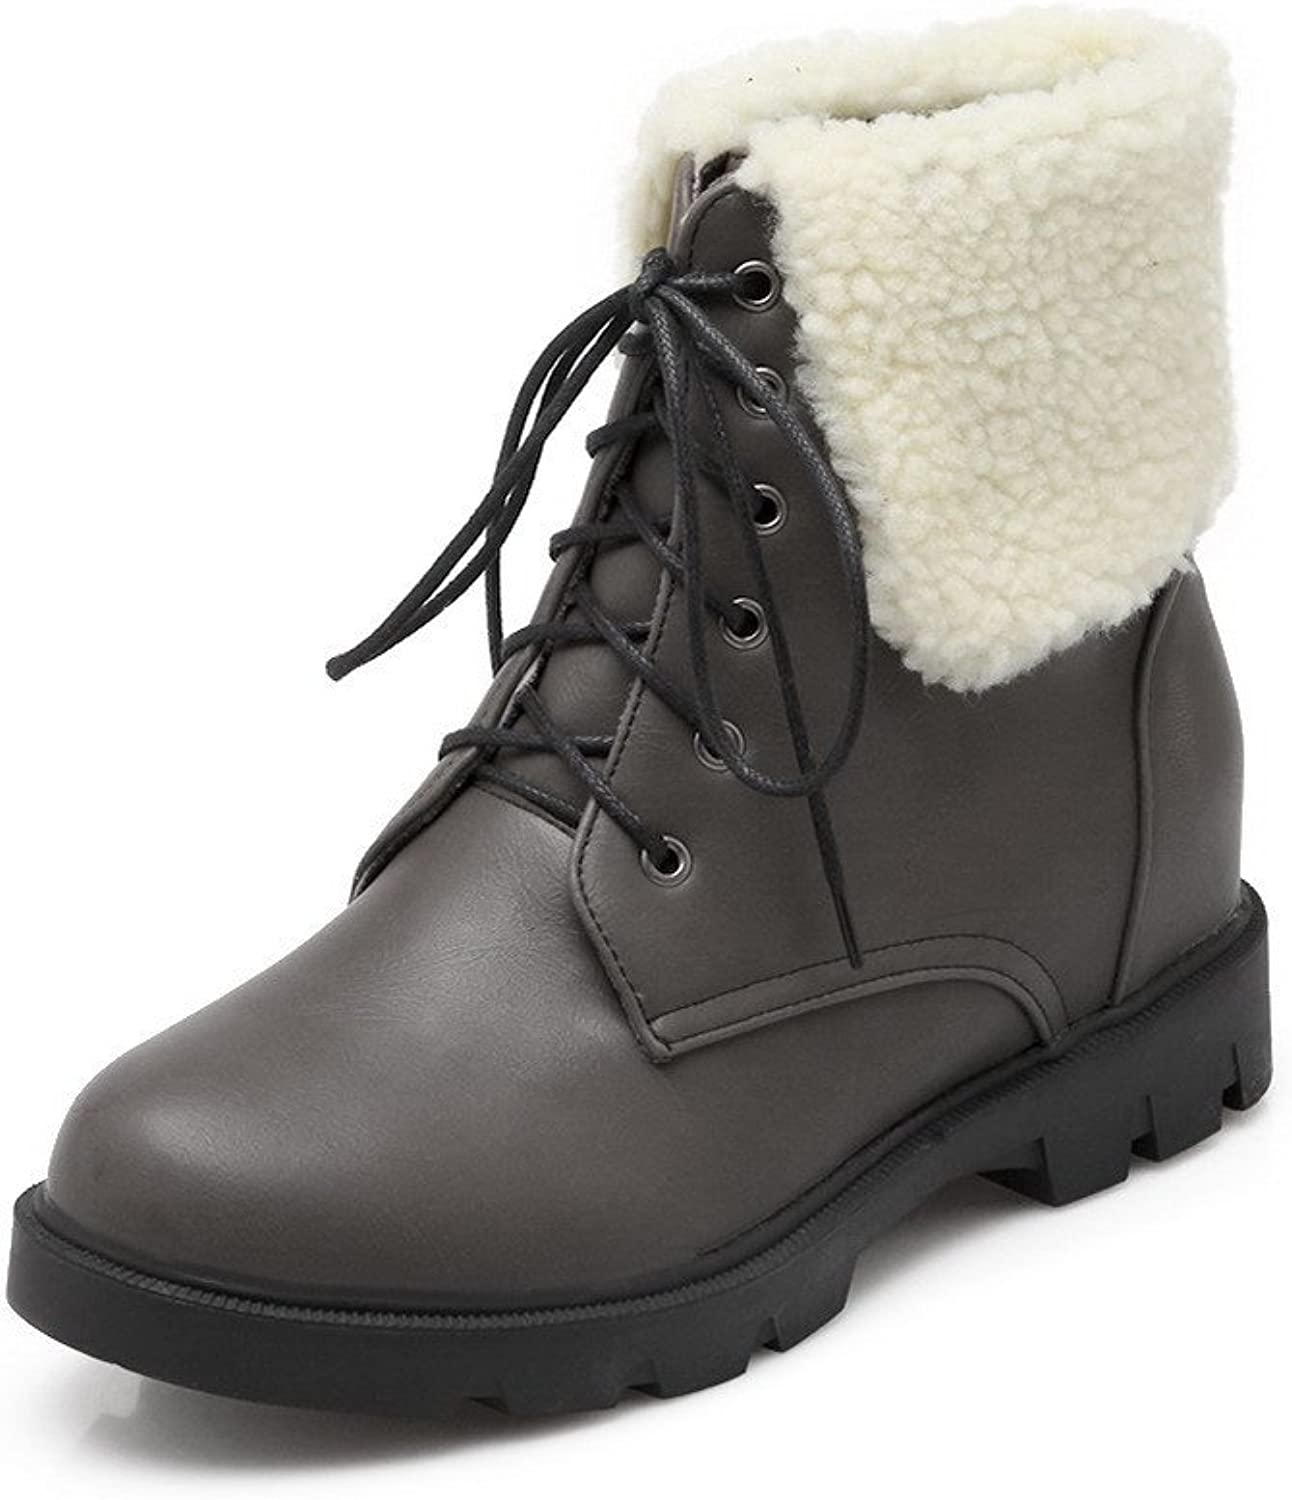 WeiPoot Women's Low Top Lace Up Kitten Heels Round Toe Boots